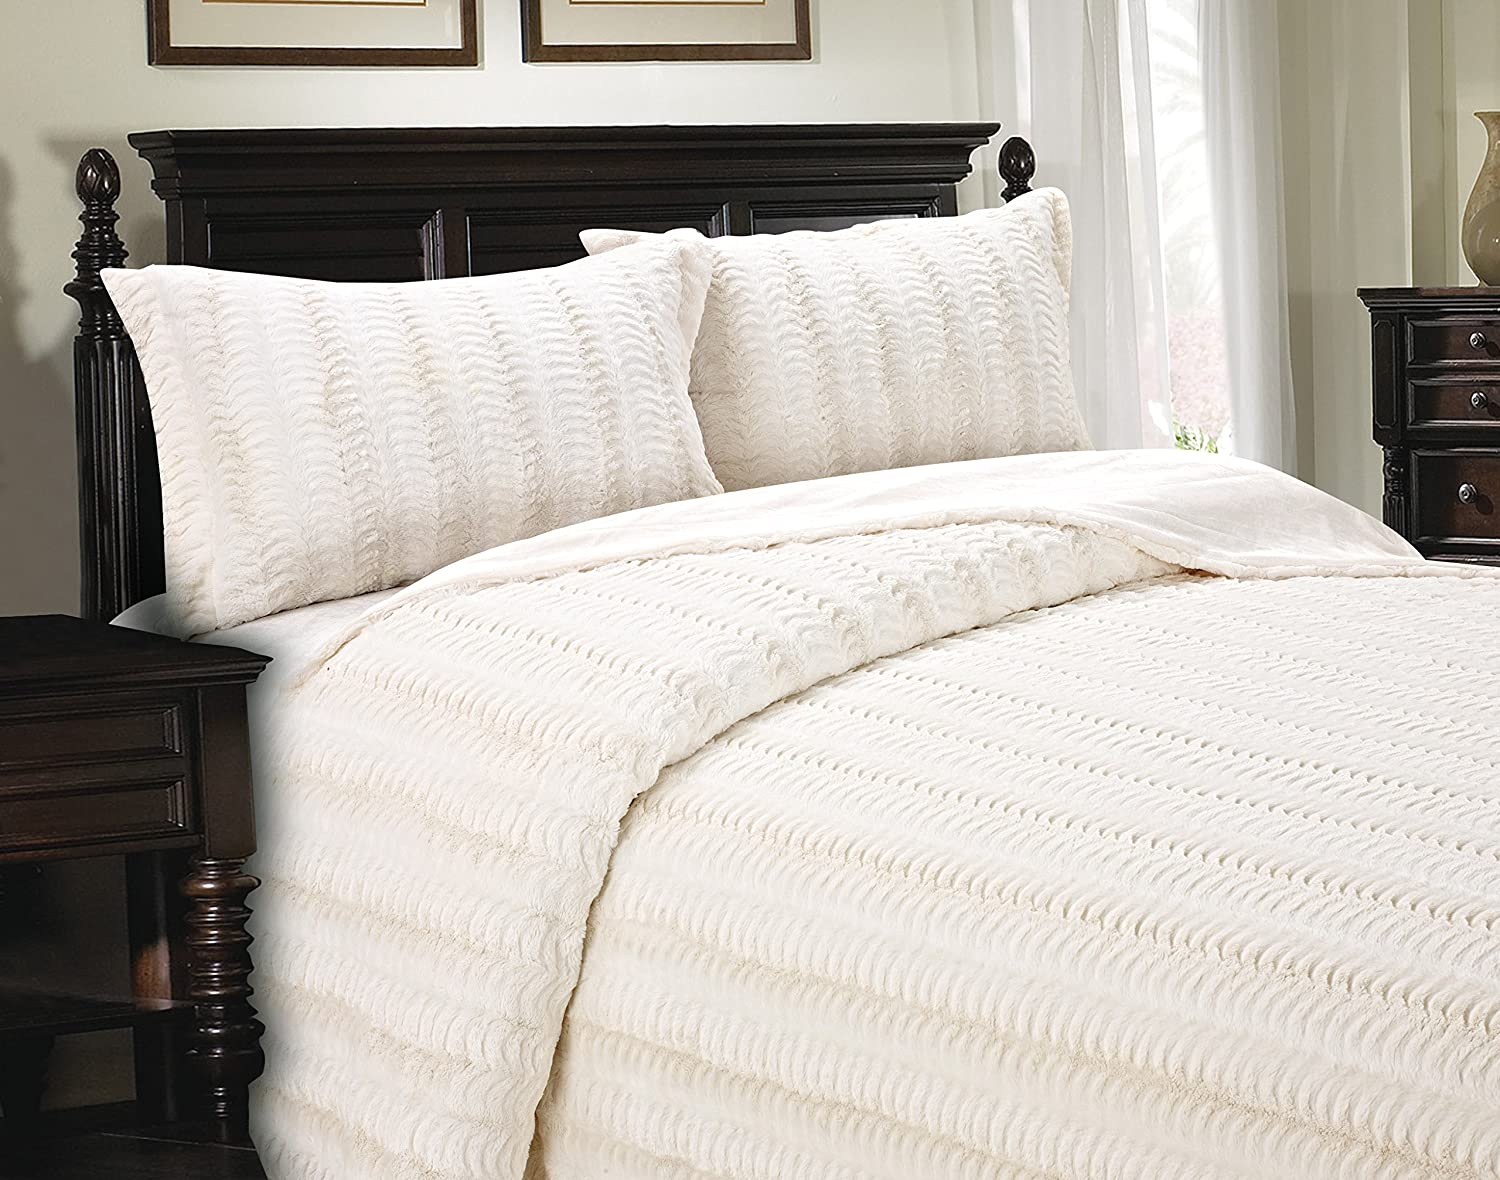 Cathay Home Lofty Luxe Faux Fur Blanket, Twin, Cream